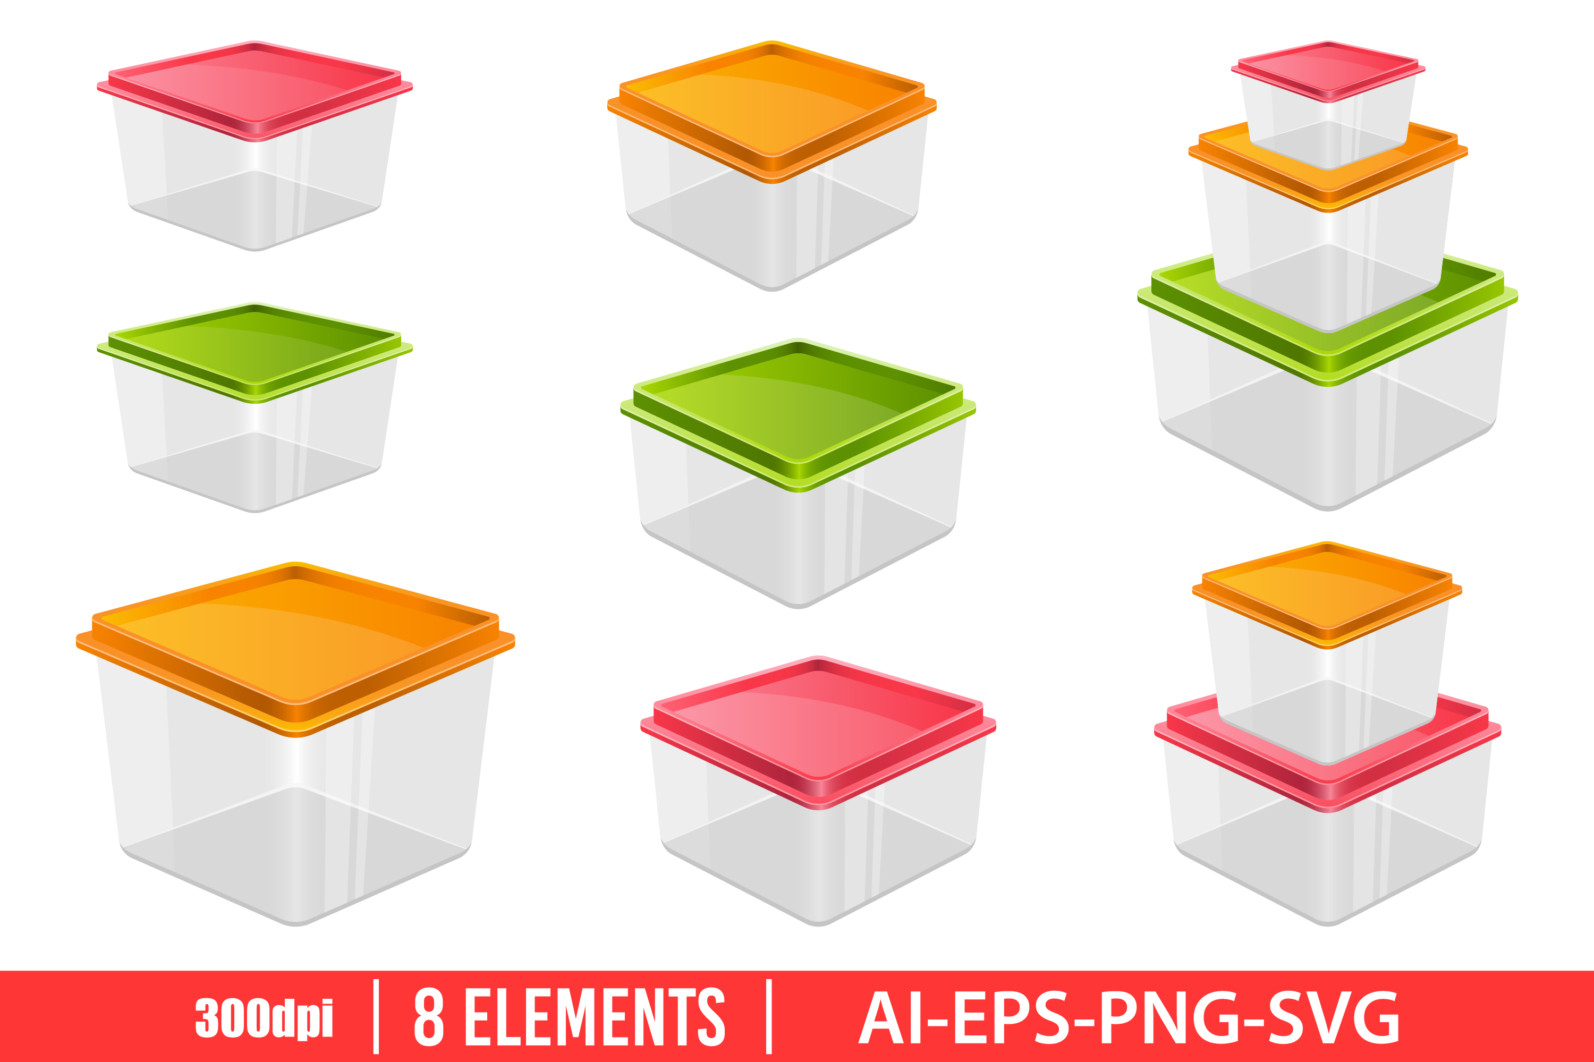 Food container clipart vector design illustration. Food container set. Vector Clipart Print - FOOD CONTAINER scaled -